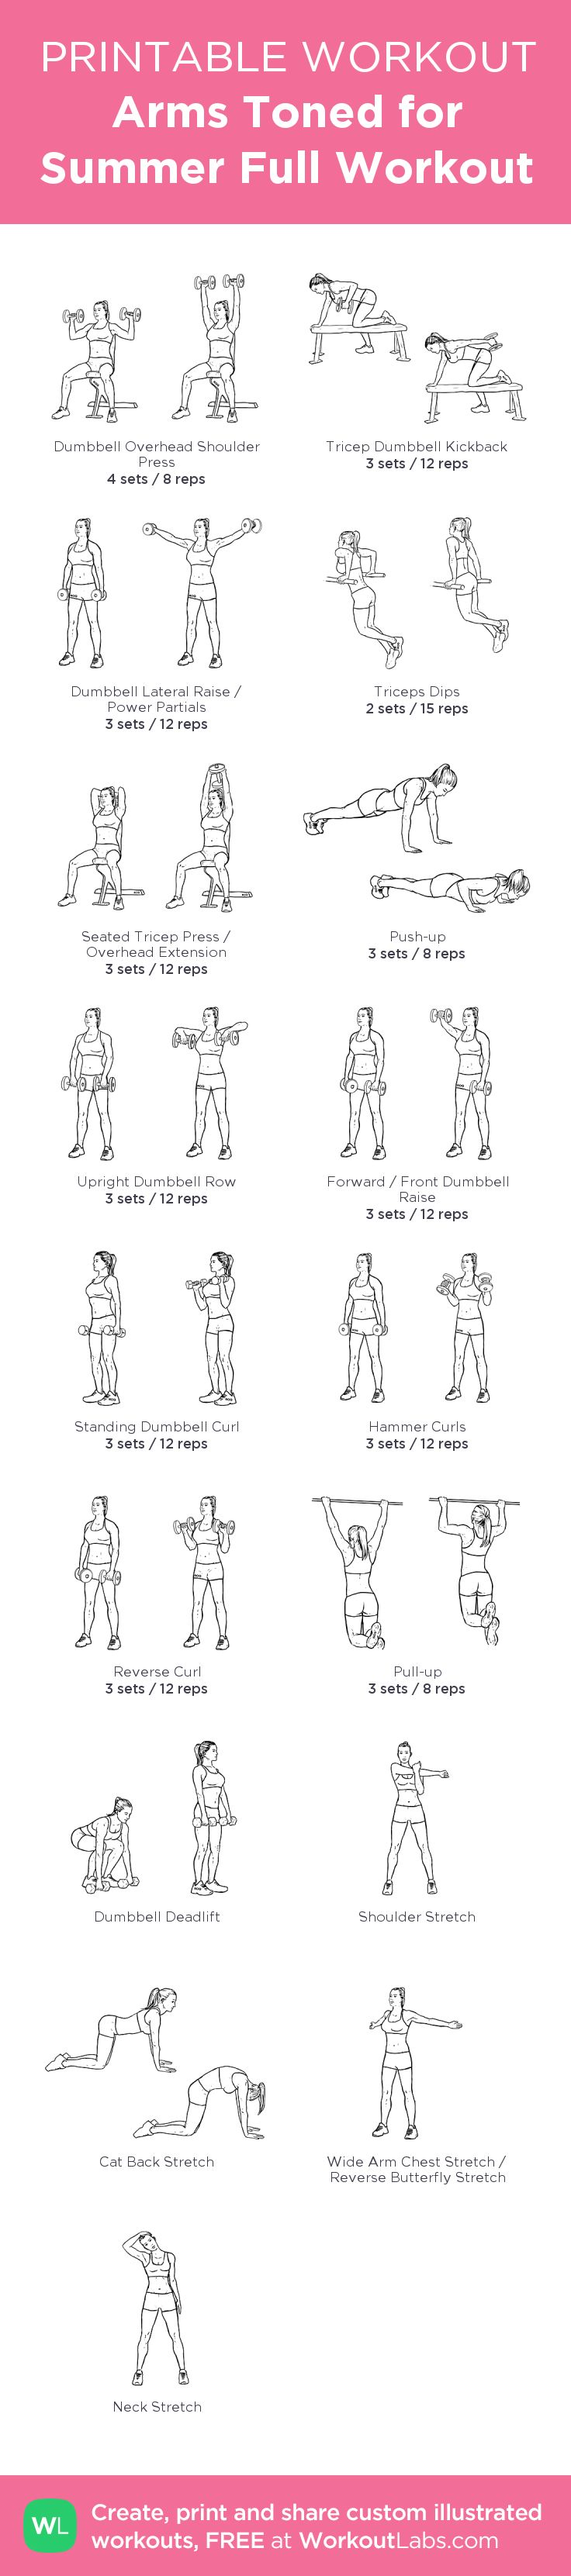 Arms Toned for Summer Full Workout:my visual workout created at WorkoutLabs.com • Click through to customize and download as a FREE PDF! #customworkout